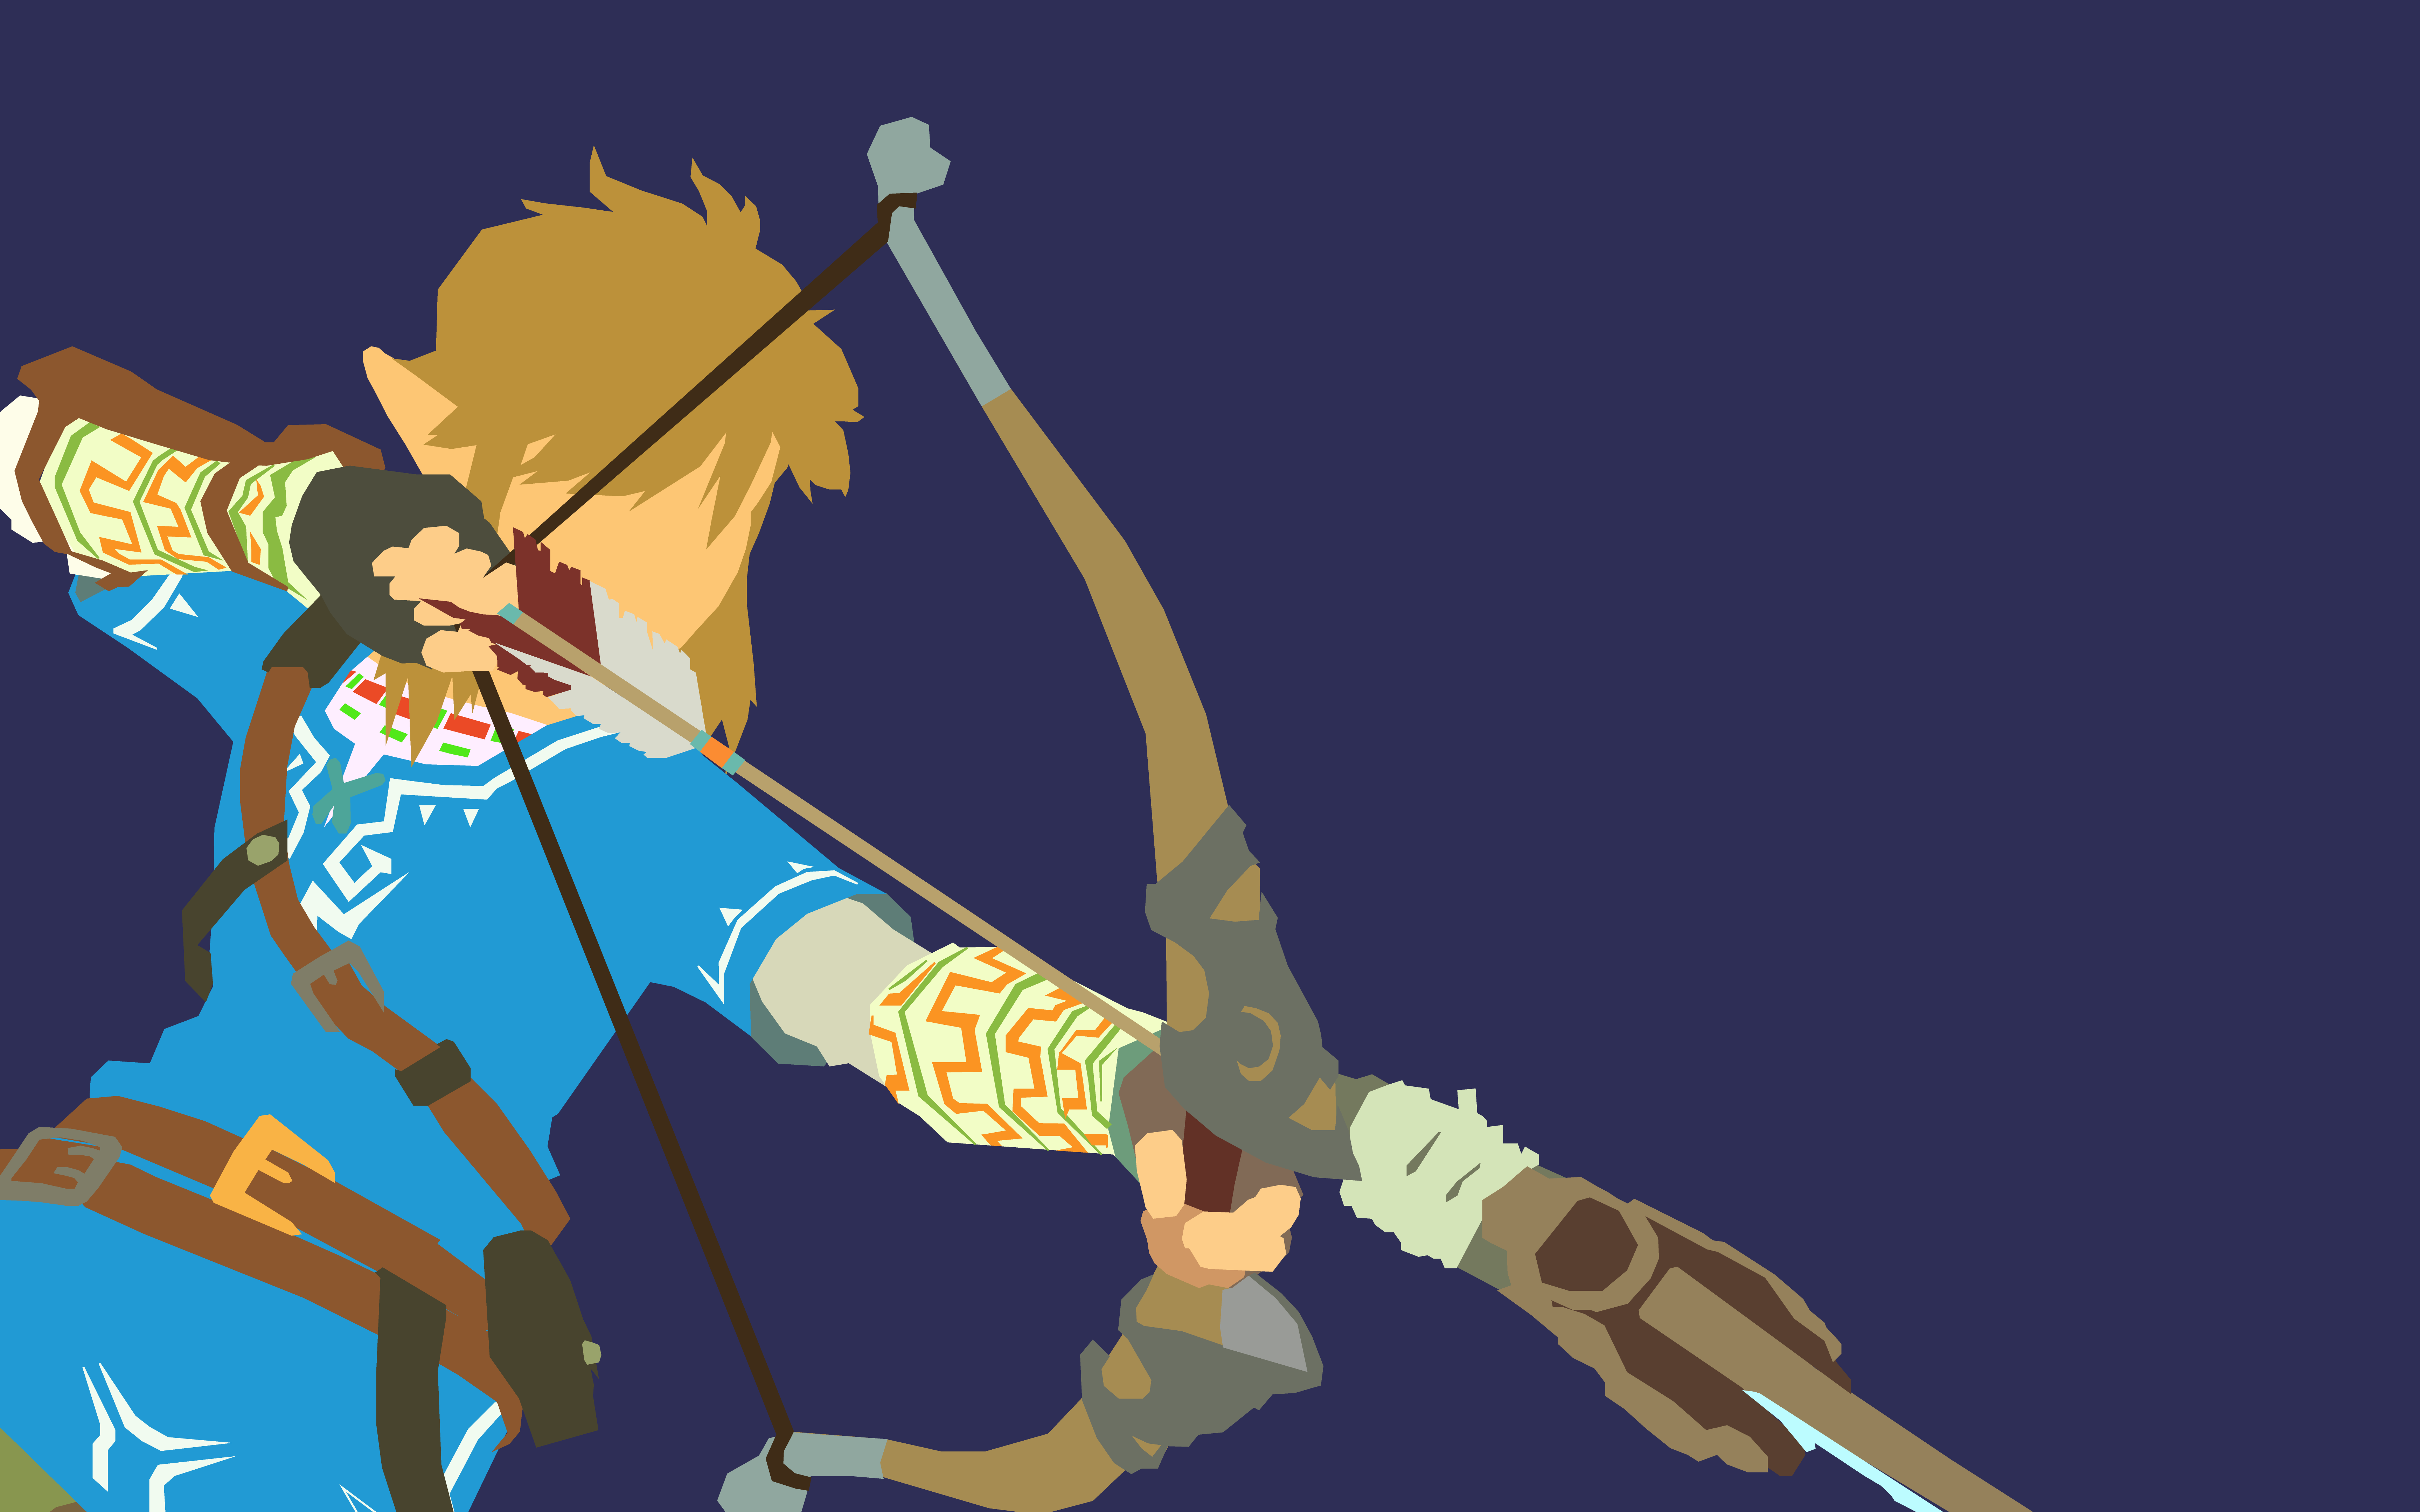 BotW I Made Some Minimalist Link Wallpapers At An Absurdly High